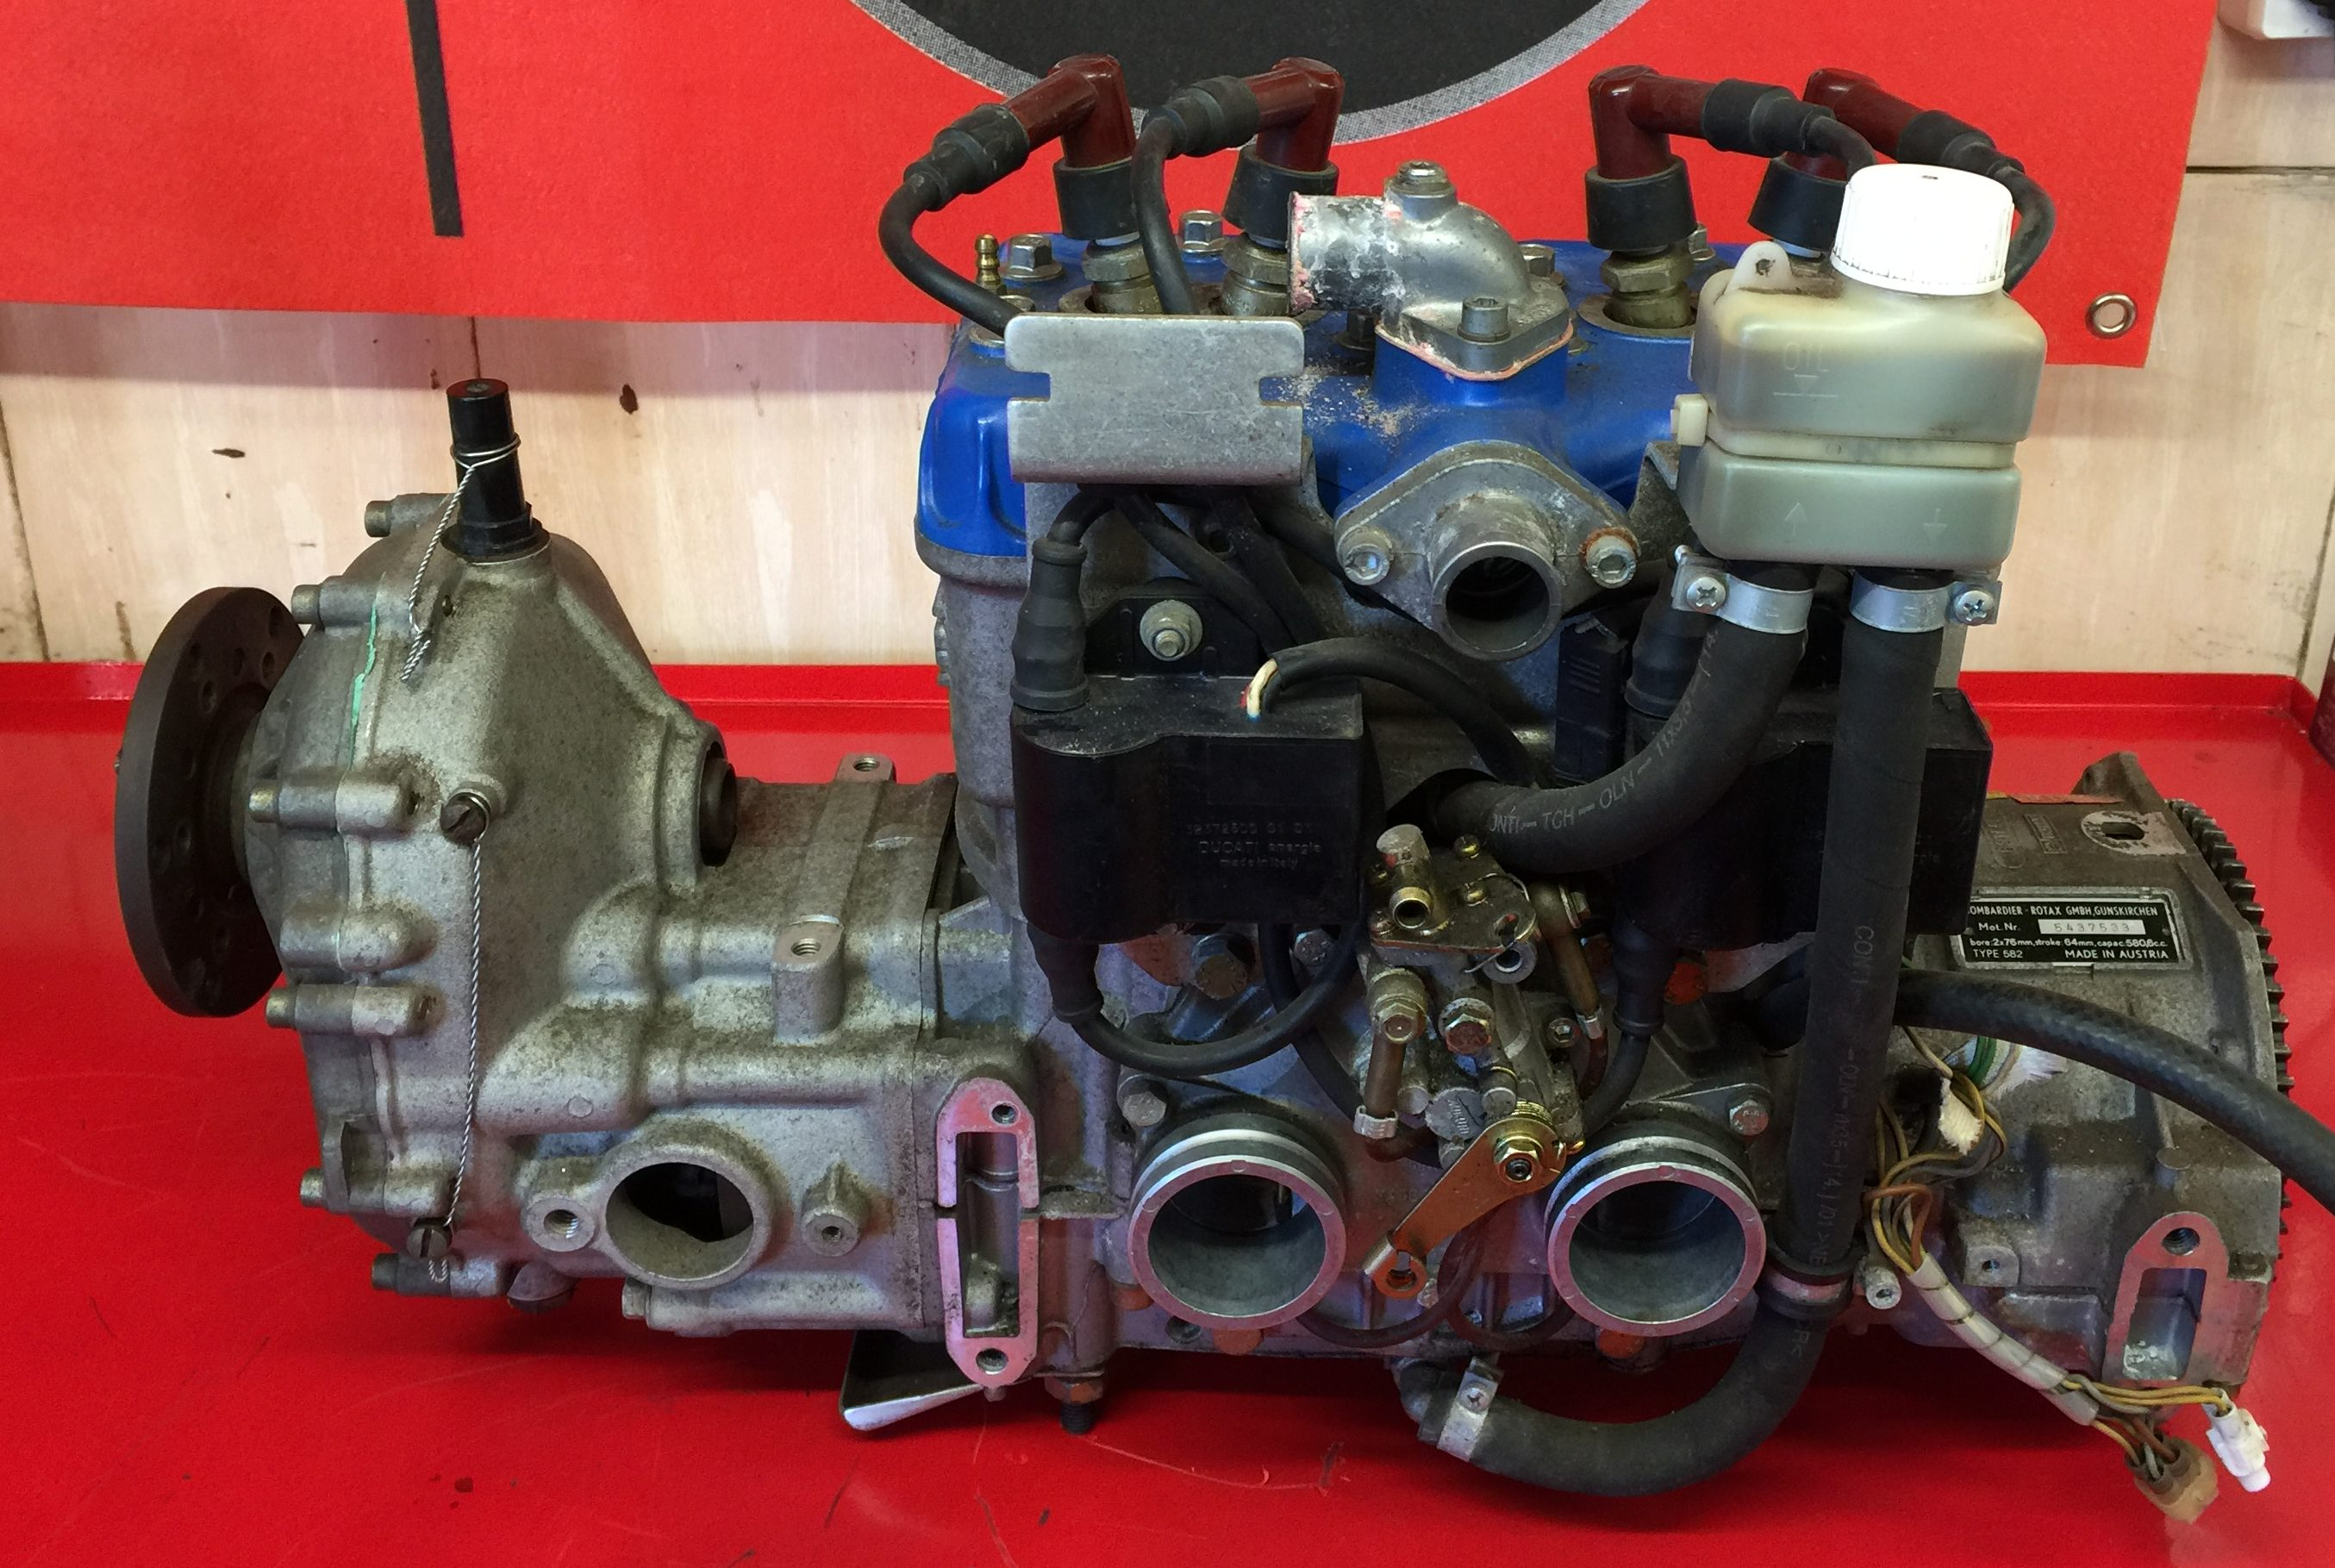 ROTAX 2 STROKE REPAIR & OVERHAUL - Eccleston Aviation